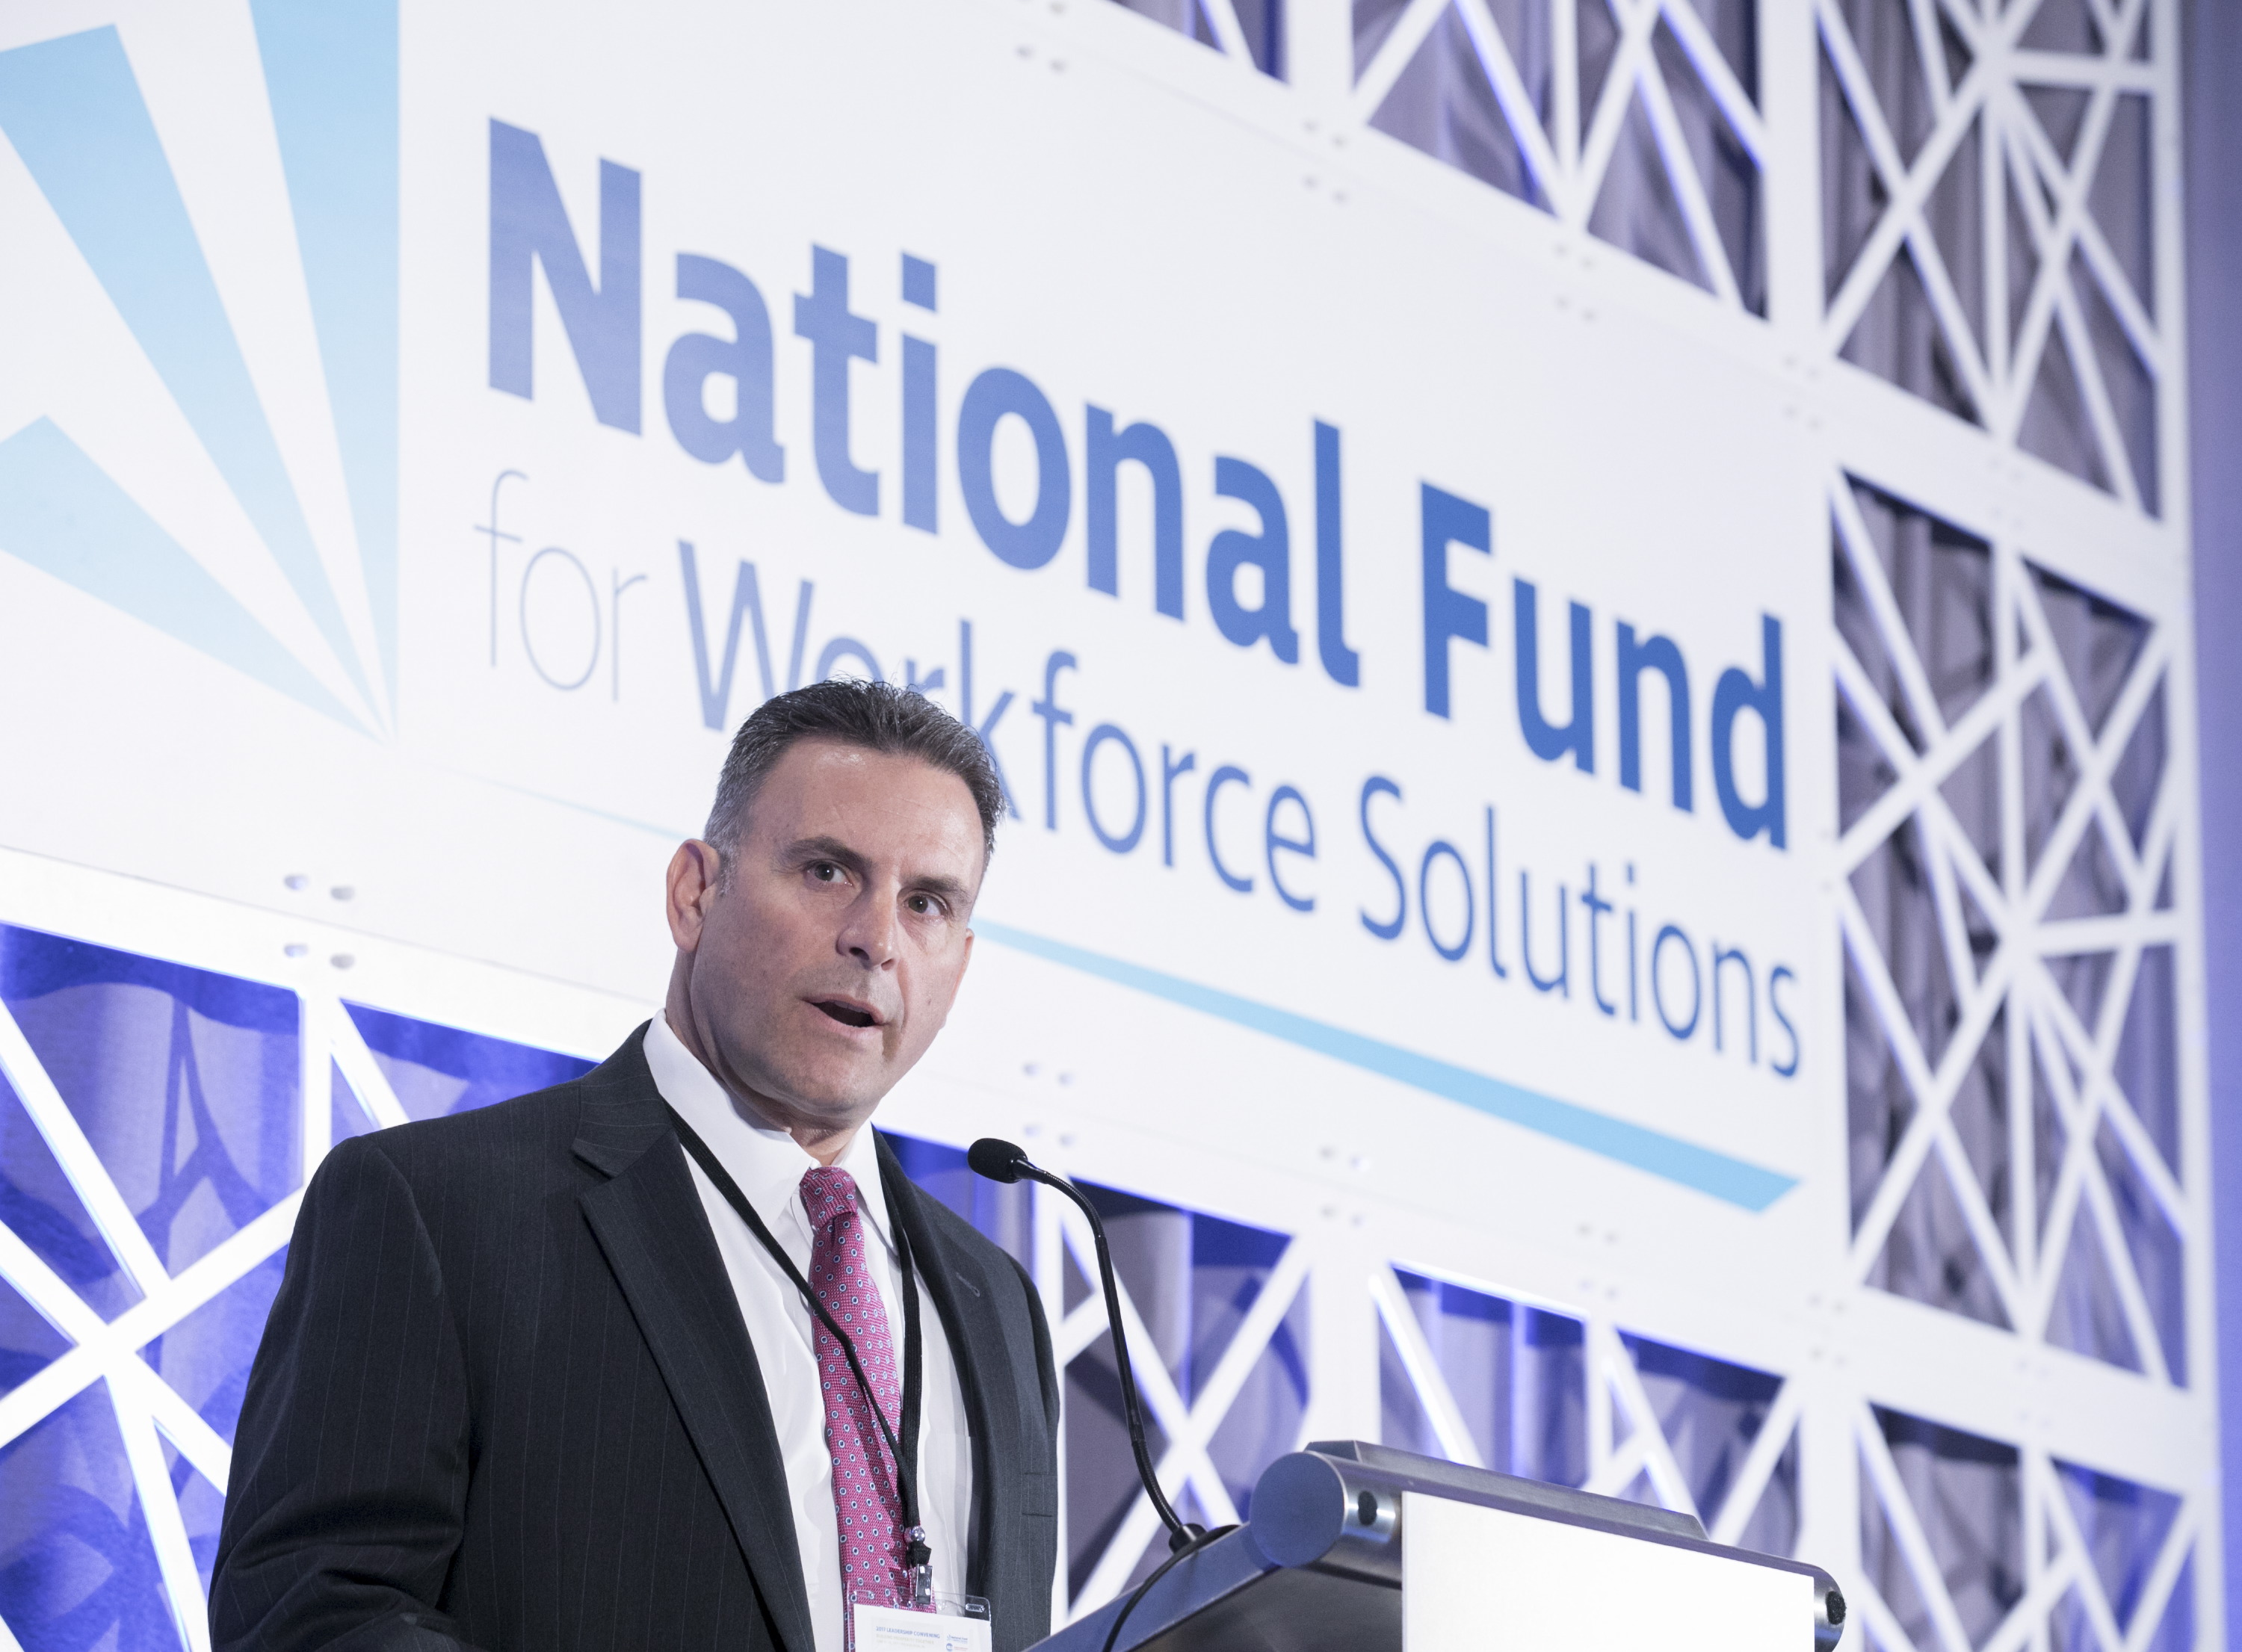 BLU elevates policy and shares best practices at National Fund for Workforce Solutions Leadership Convening